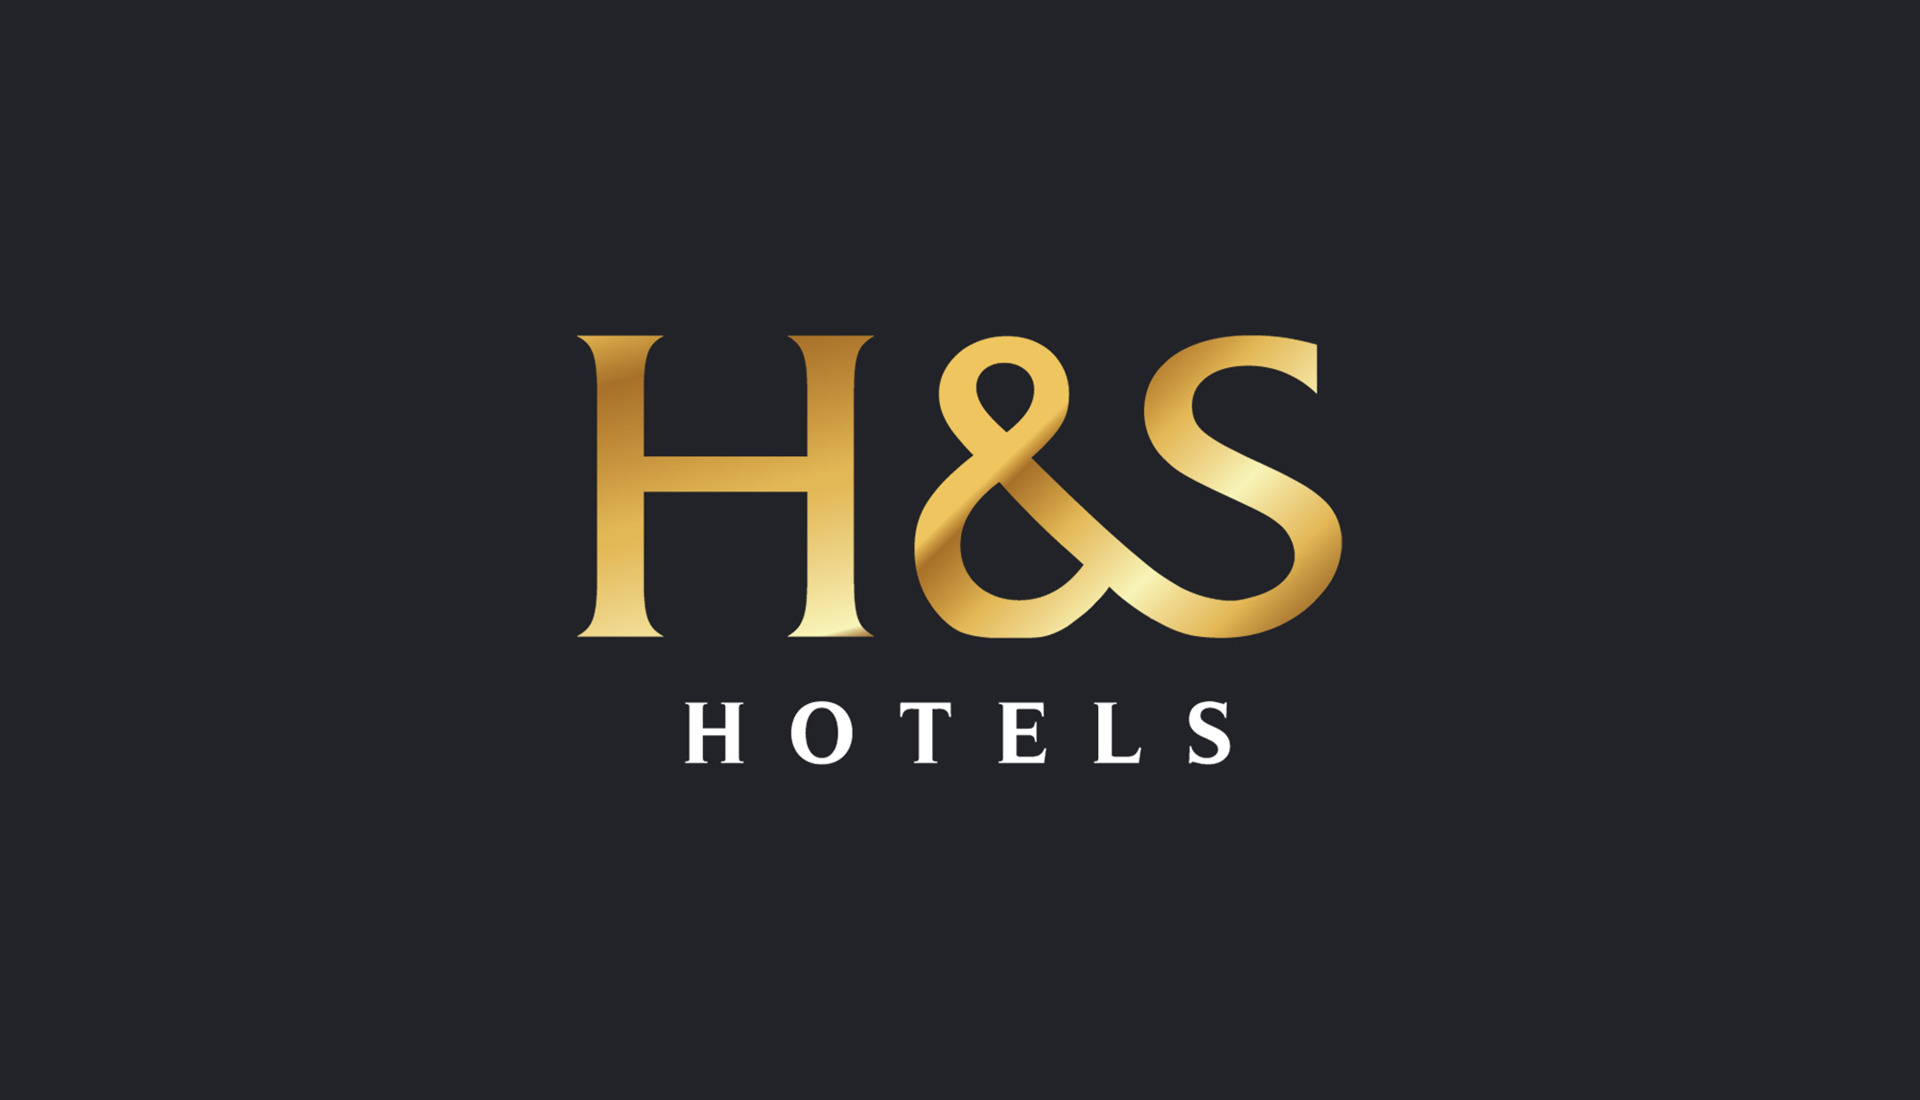 H&S HOTELS